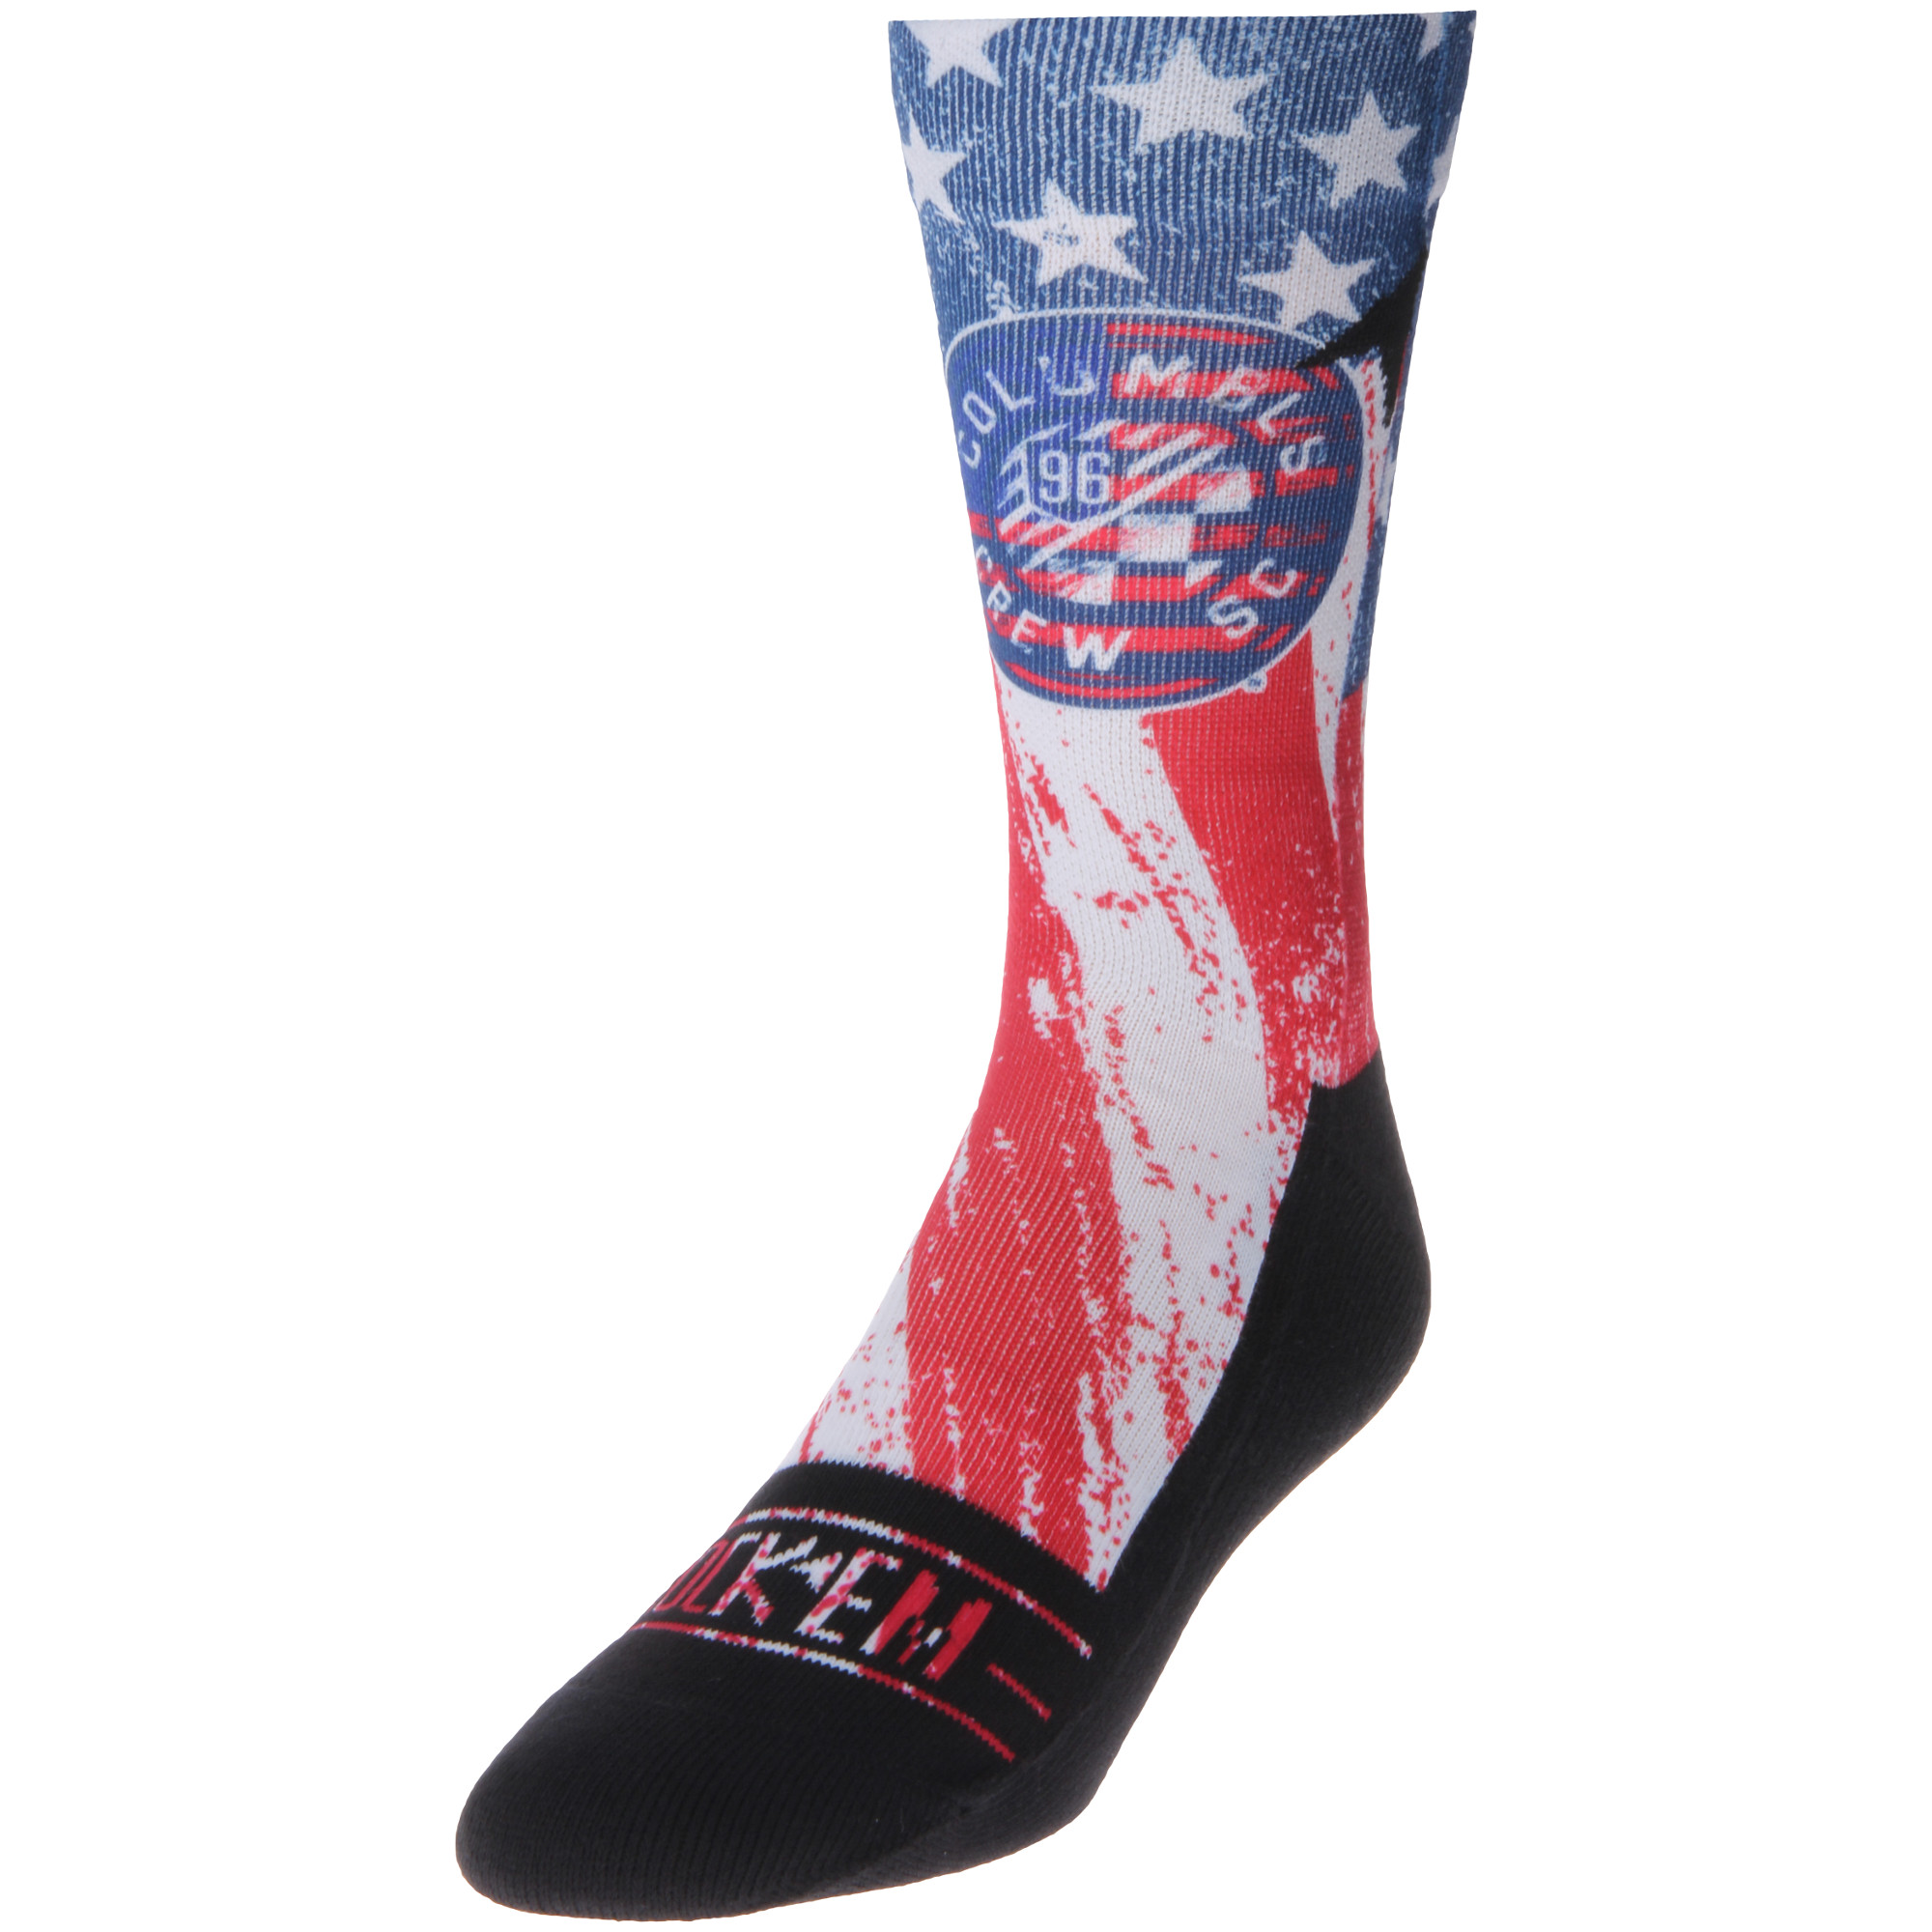 Columbus Crew SC For Club and Country Socks - Blue